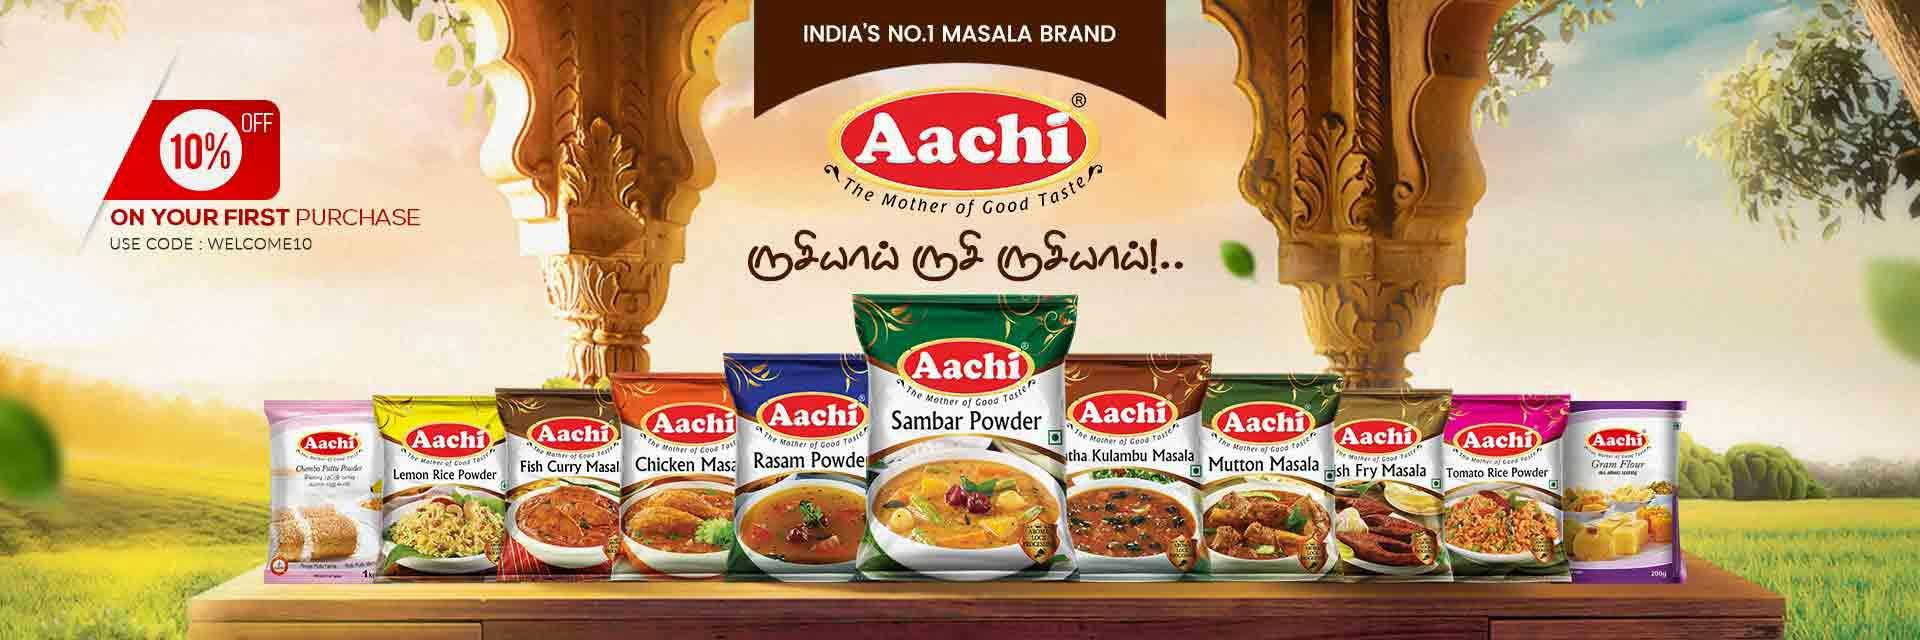 Delicious Aachi Spices Masalas Online